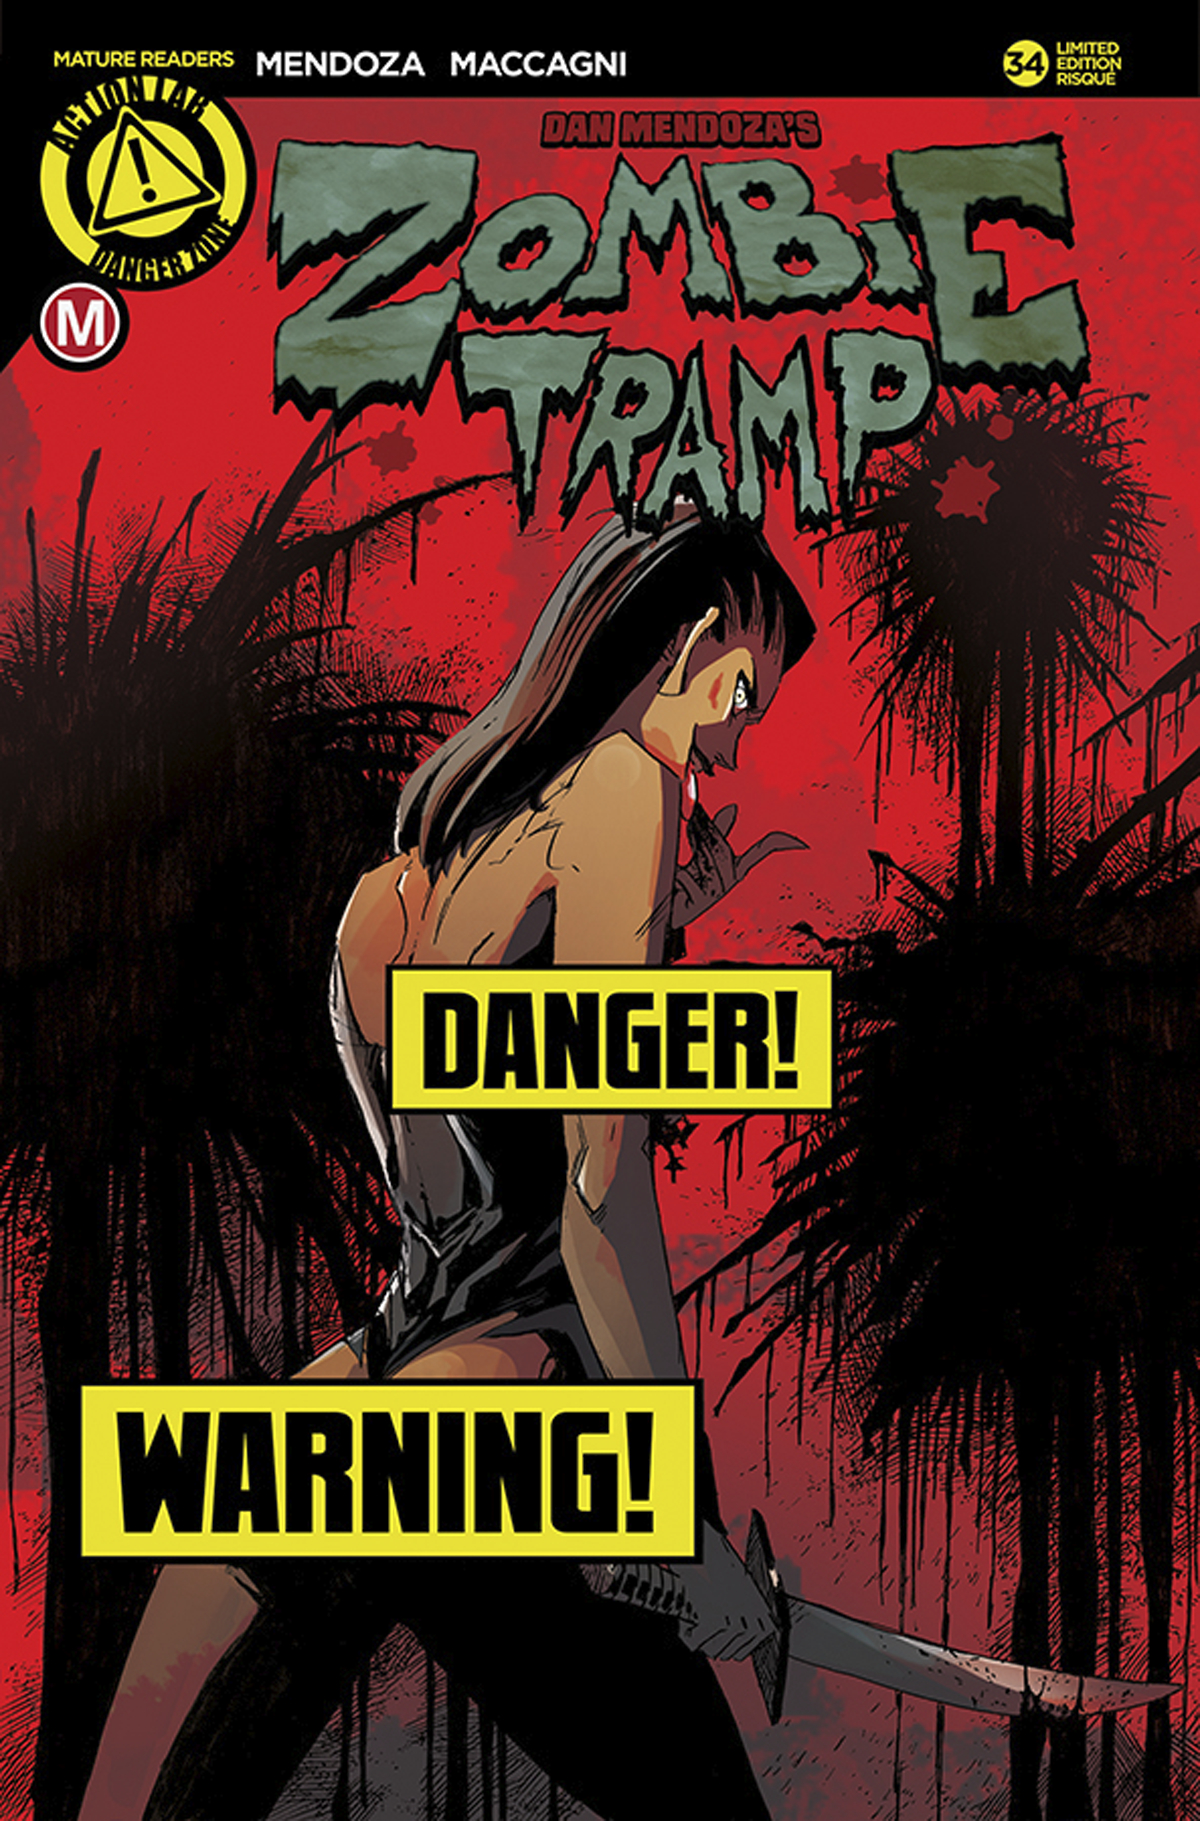 ZOMBIE TRAMP ONGOING #34 CVR D MACCAGNI RISQUE